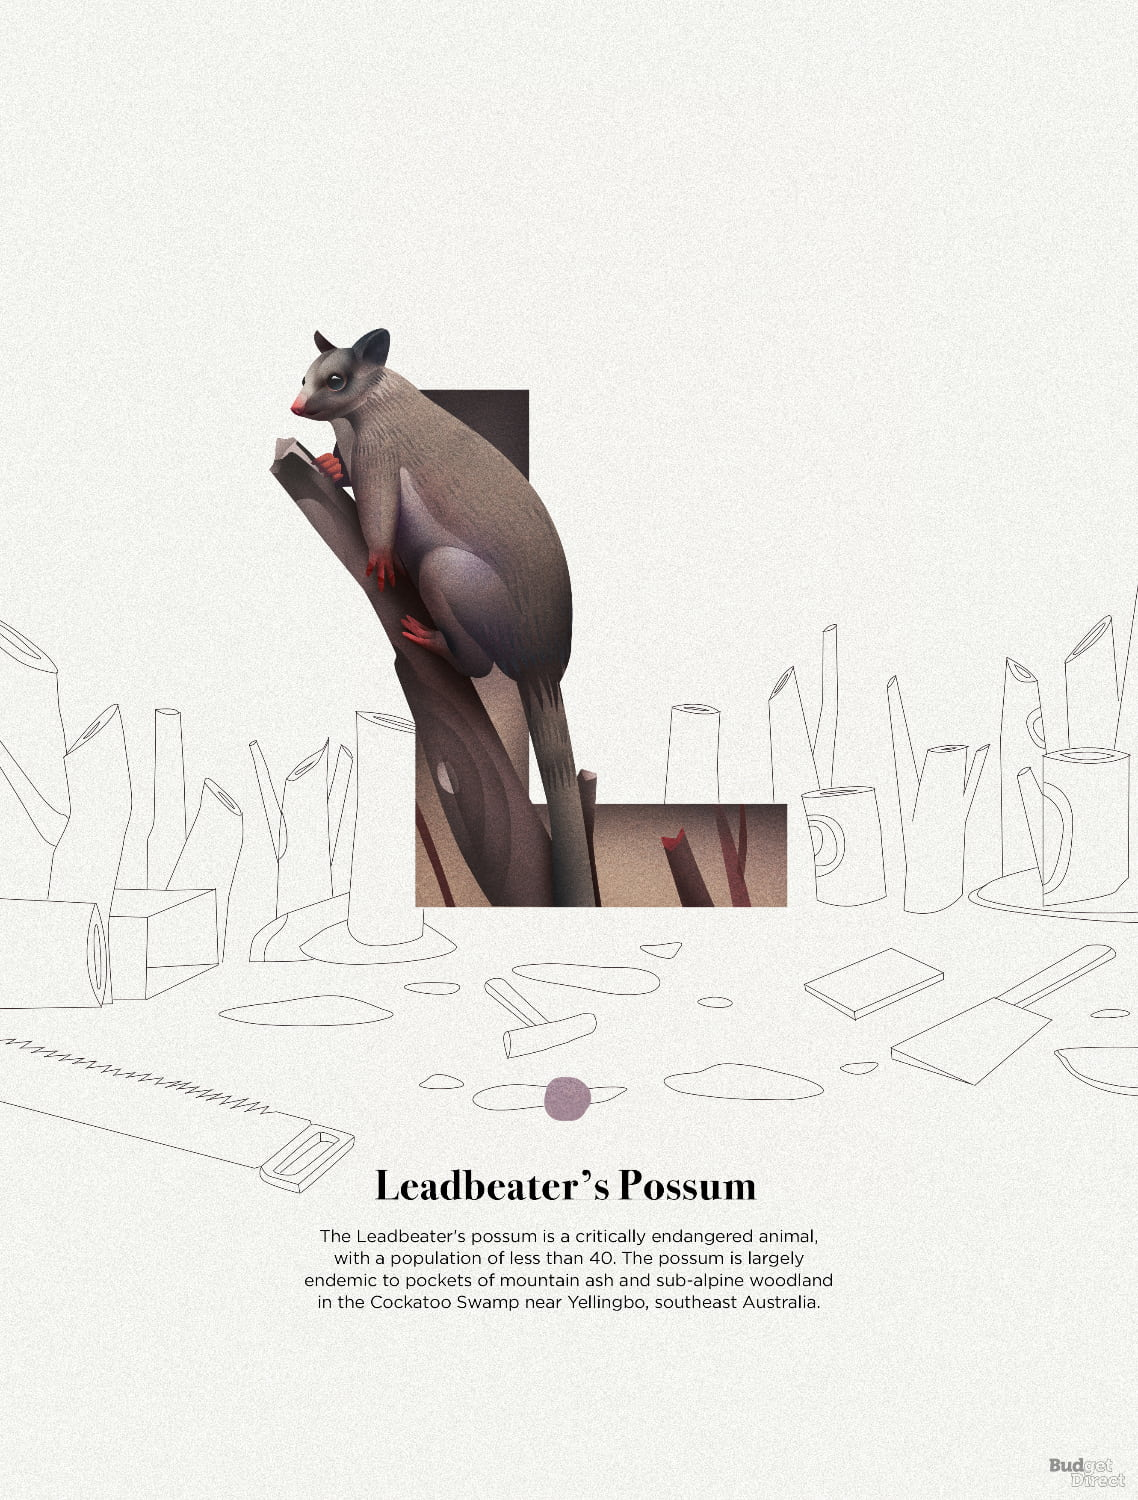 L is for Leadbeaters Possum